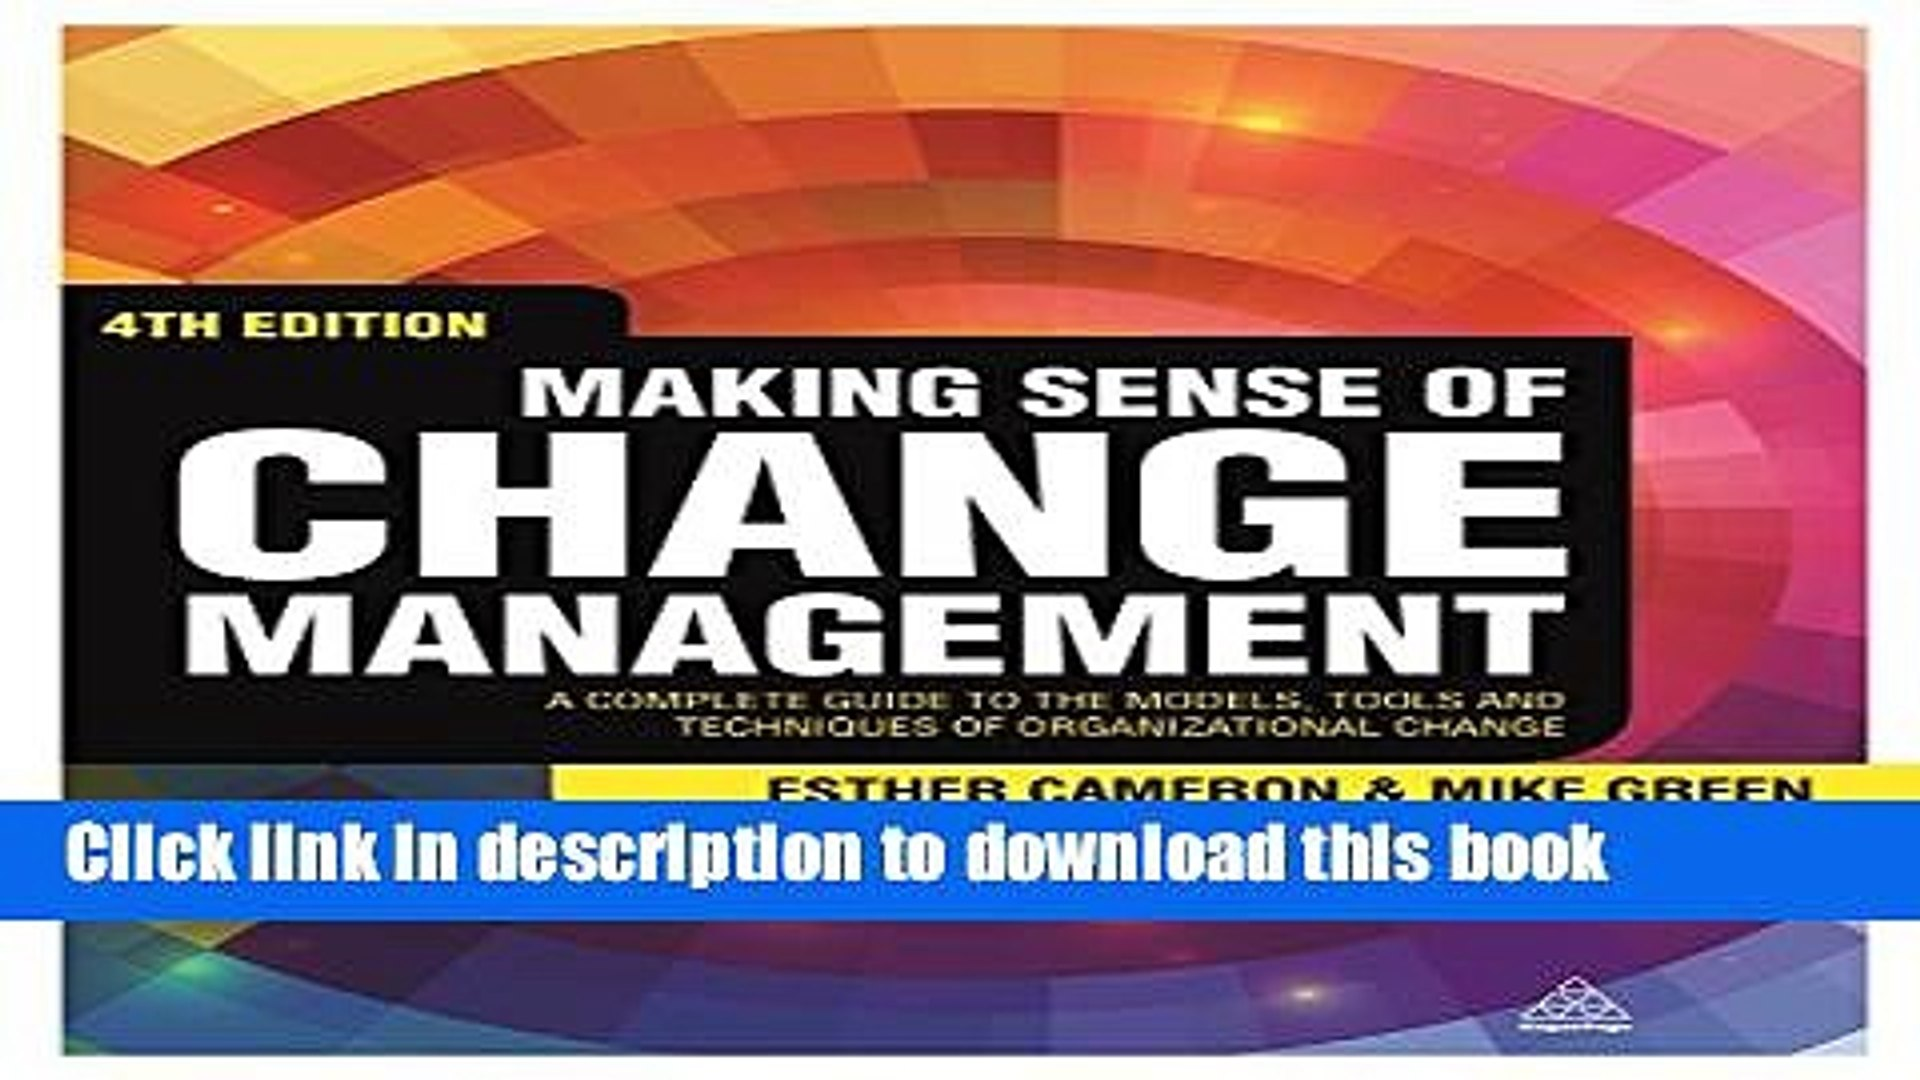 [Download] Making Sense of Change Management: A Complete Guide to the Models, Tools and Techniques